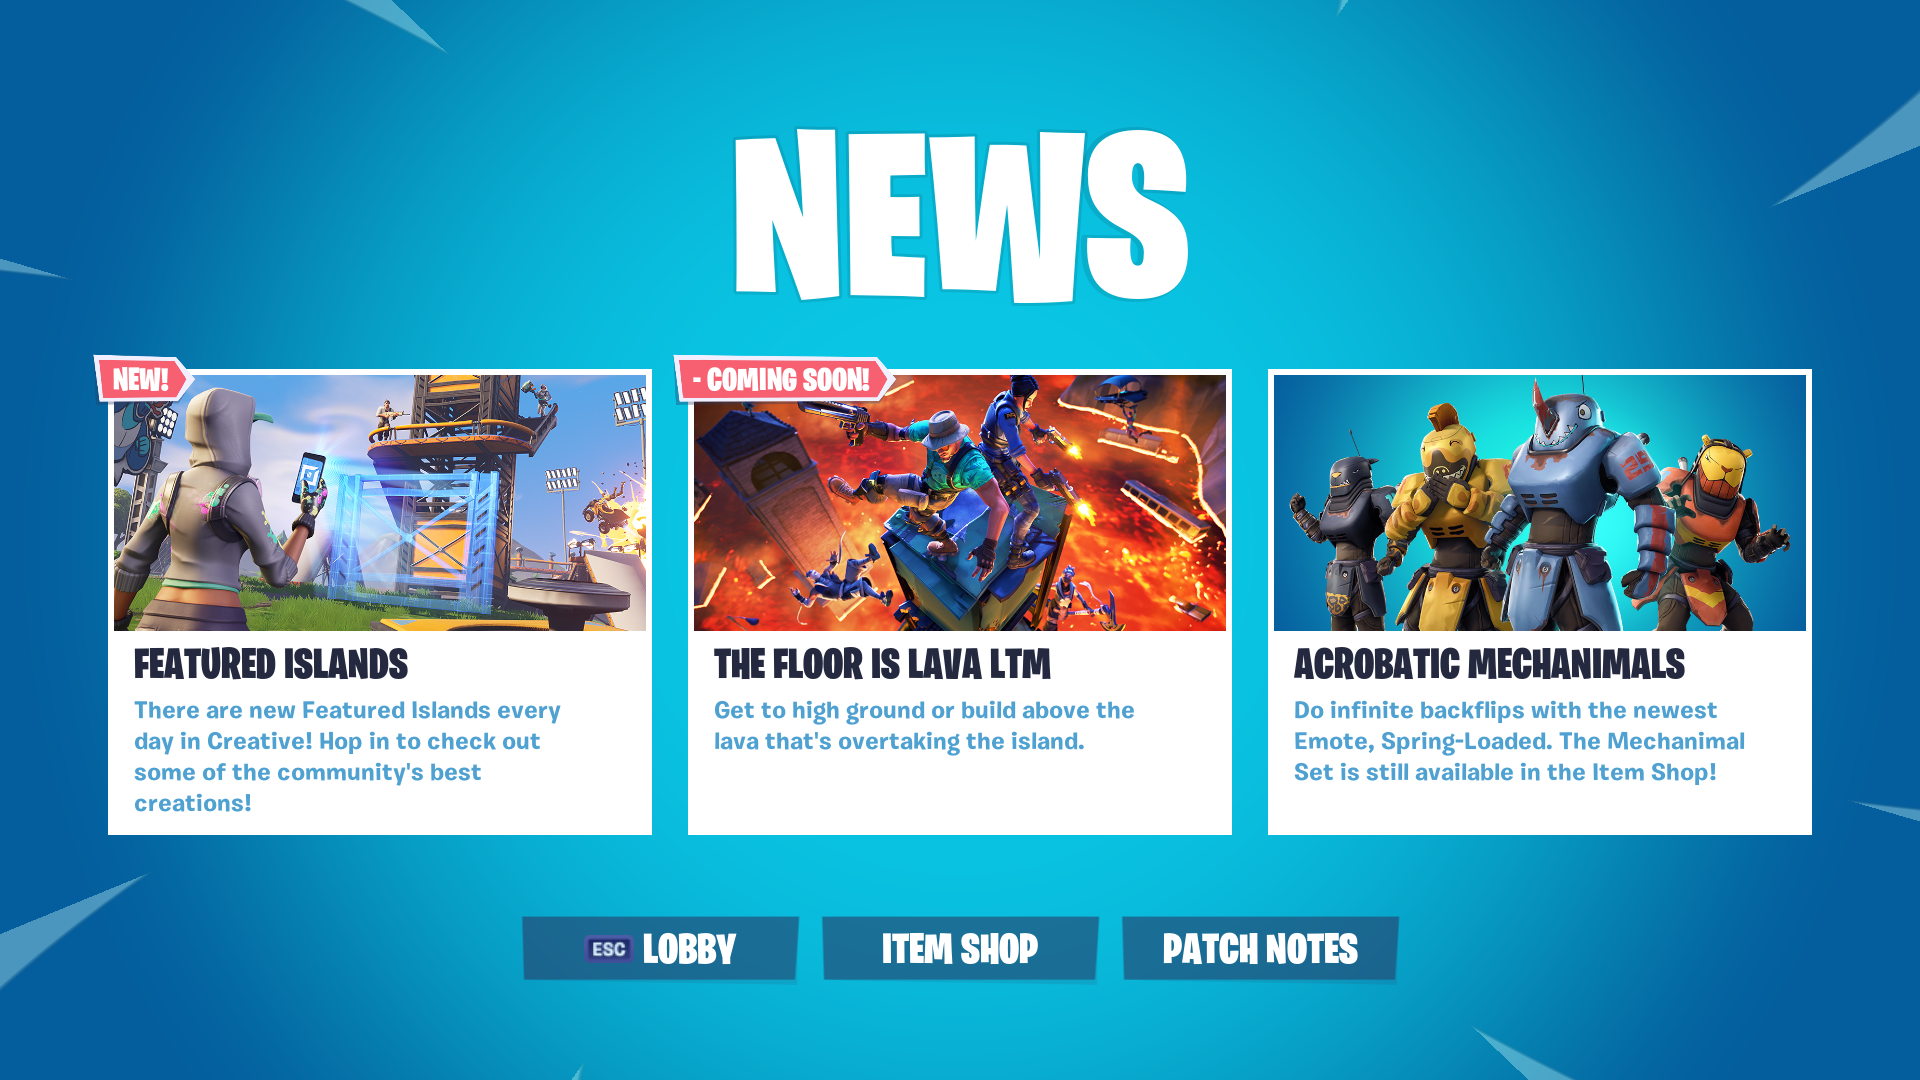 Psa Fortnite V8 20 Arrives March 27 Fortnite News And Statistics